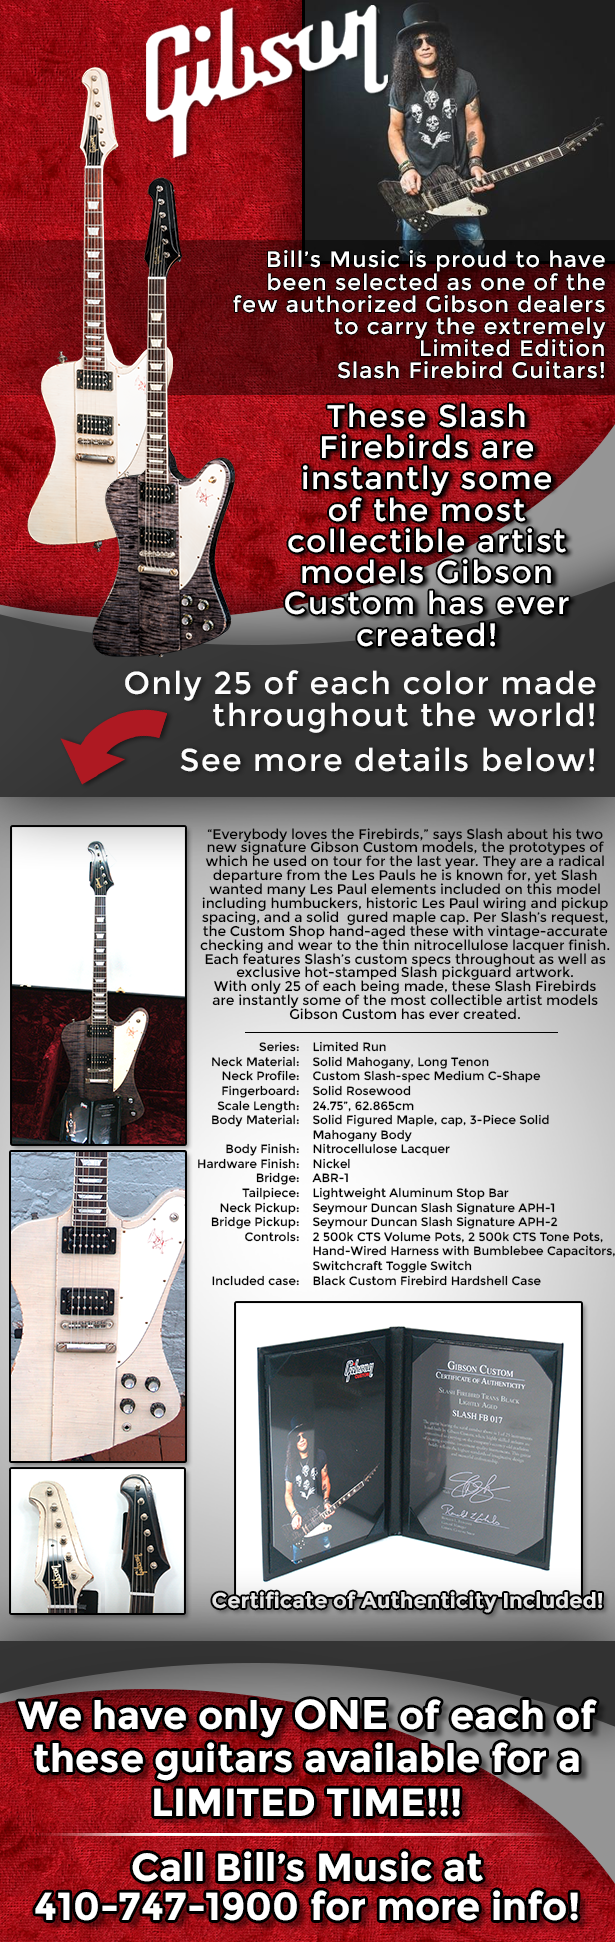 gibson-webpage.png